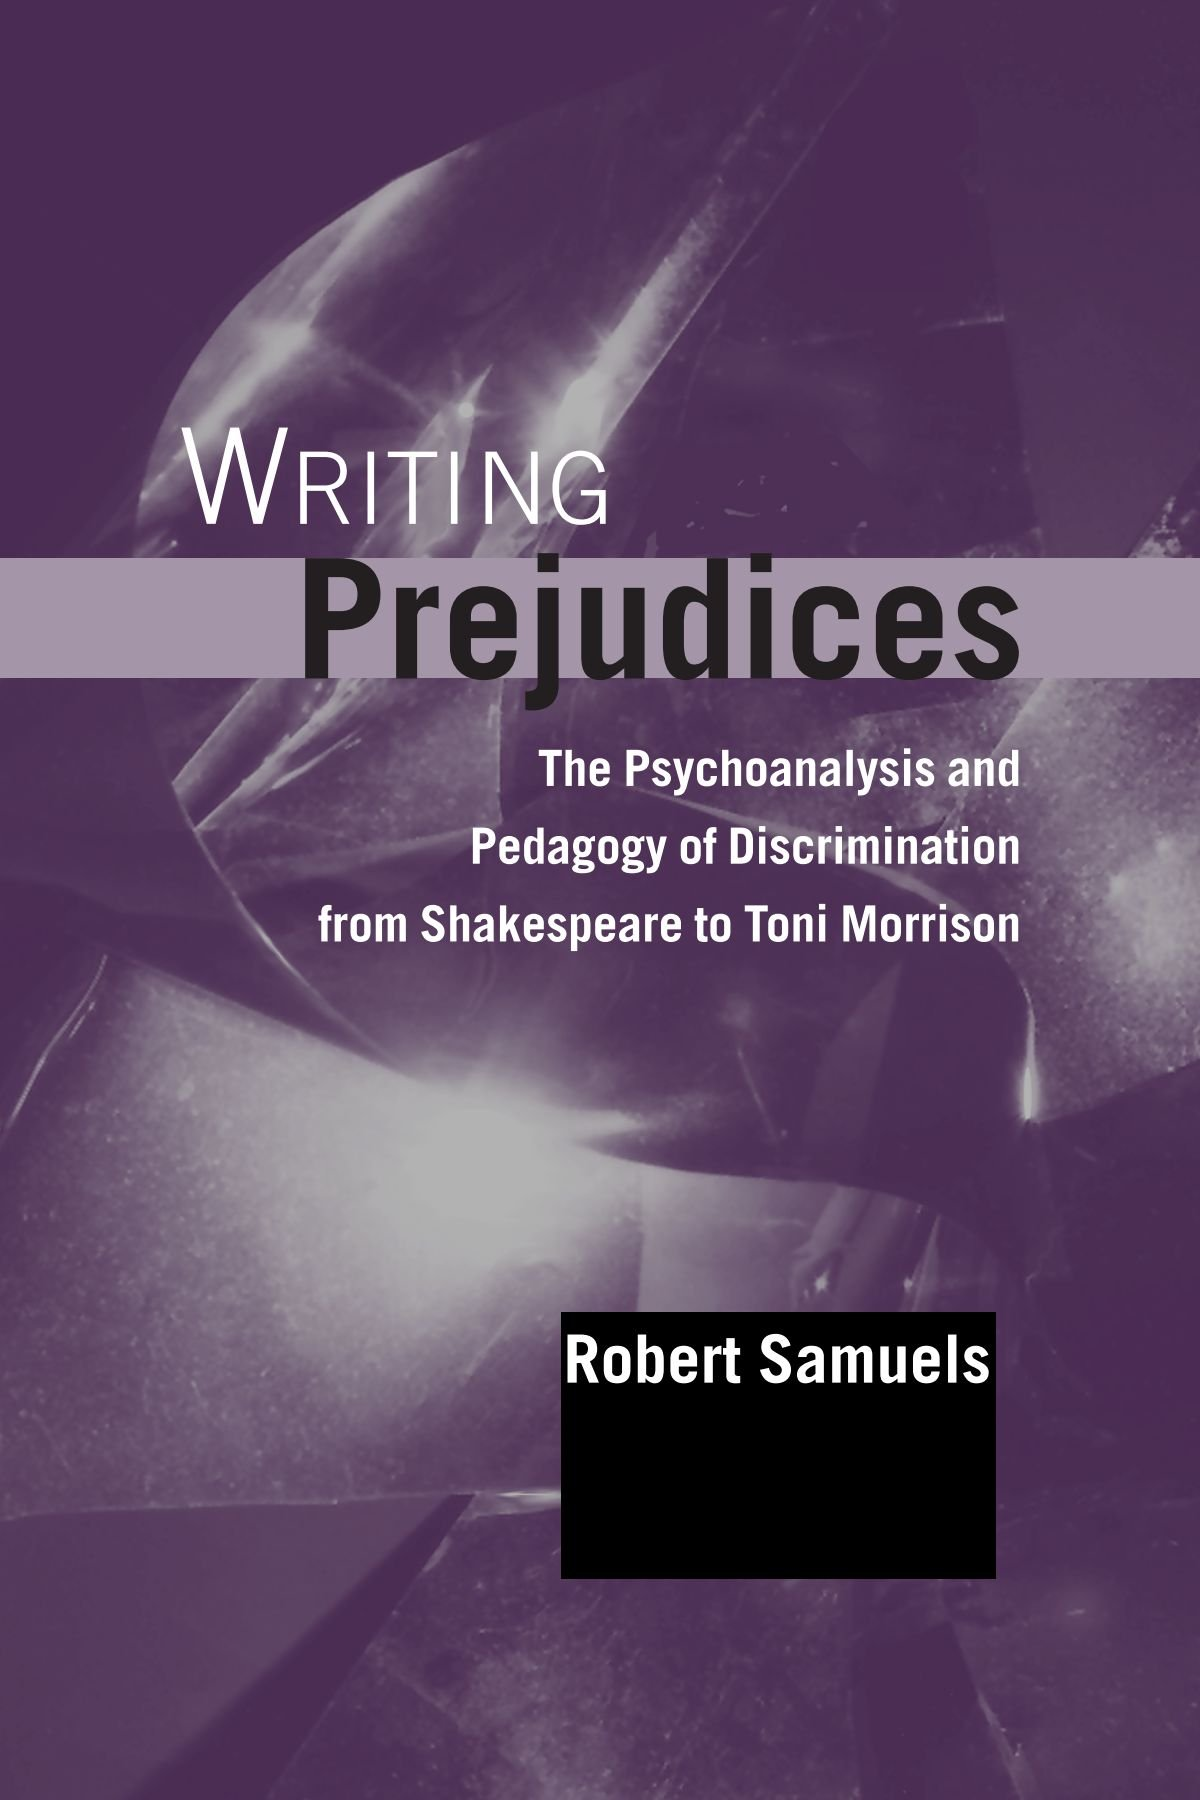 Download Writing Prejudices: The Psychoanalysis and Pedagogy of Discrimination from Shakespeare to Toni Morrison (SUNY series in Psychoanalysis and Culture) ebook